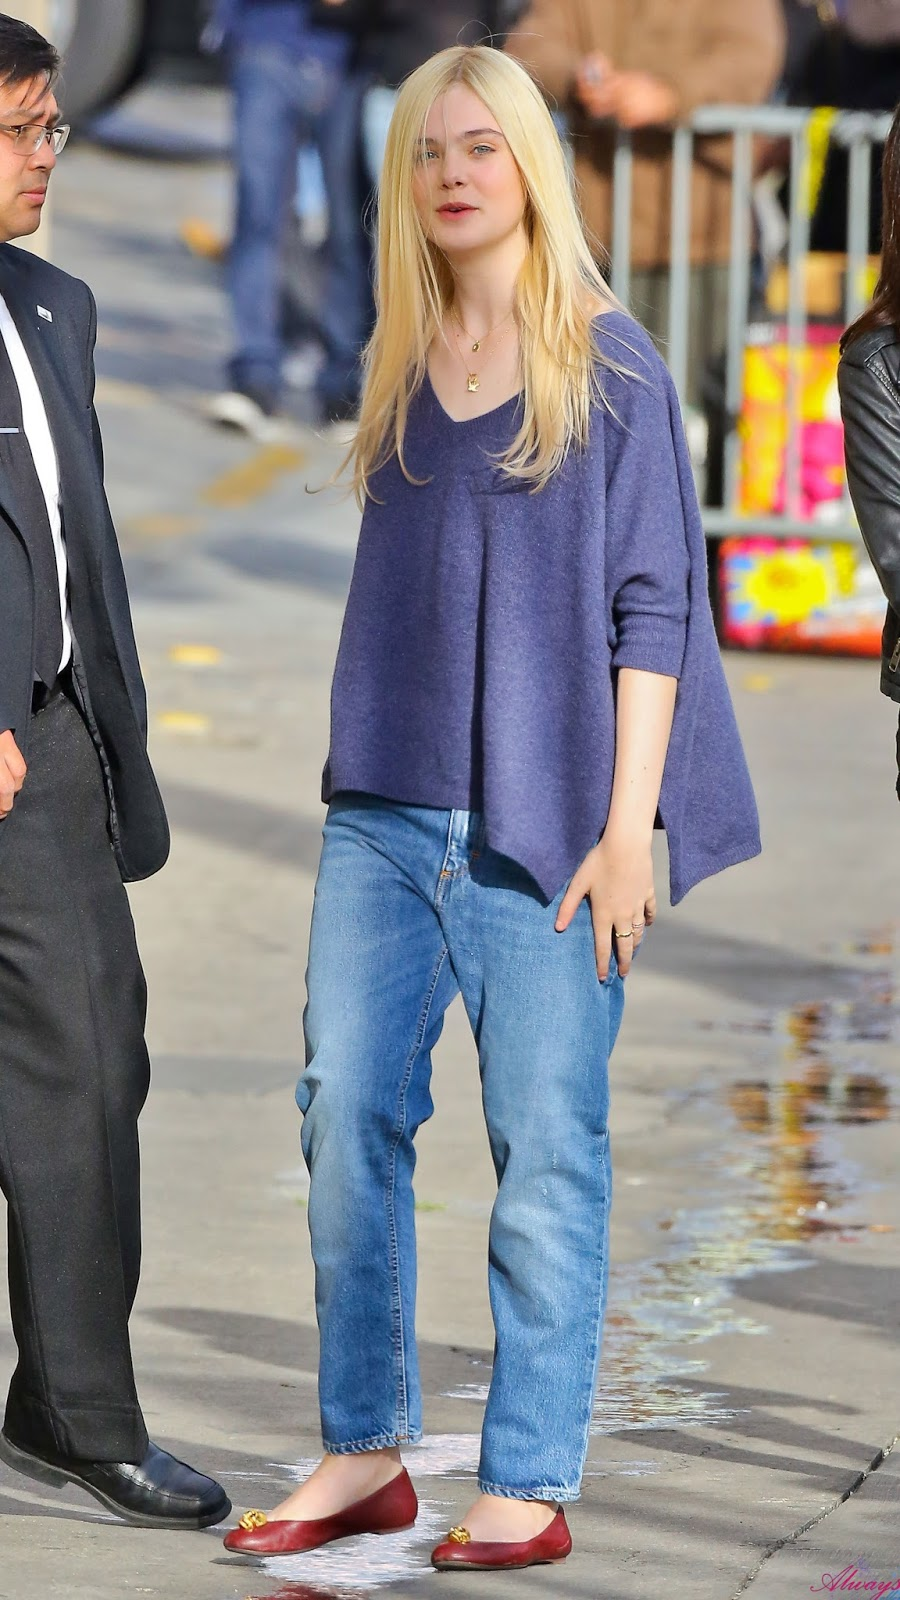 Never Be Afraid I Celebrity Inspiration Fashion Elle Fanning 39 S Street Style